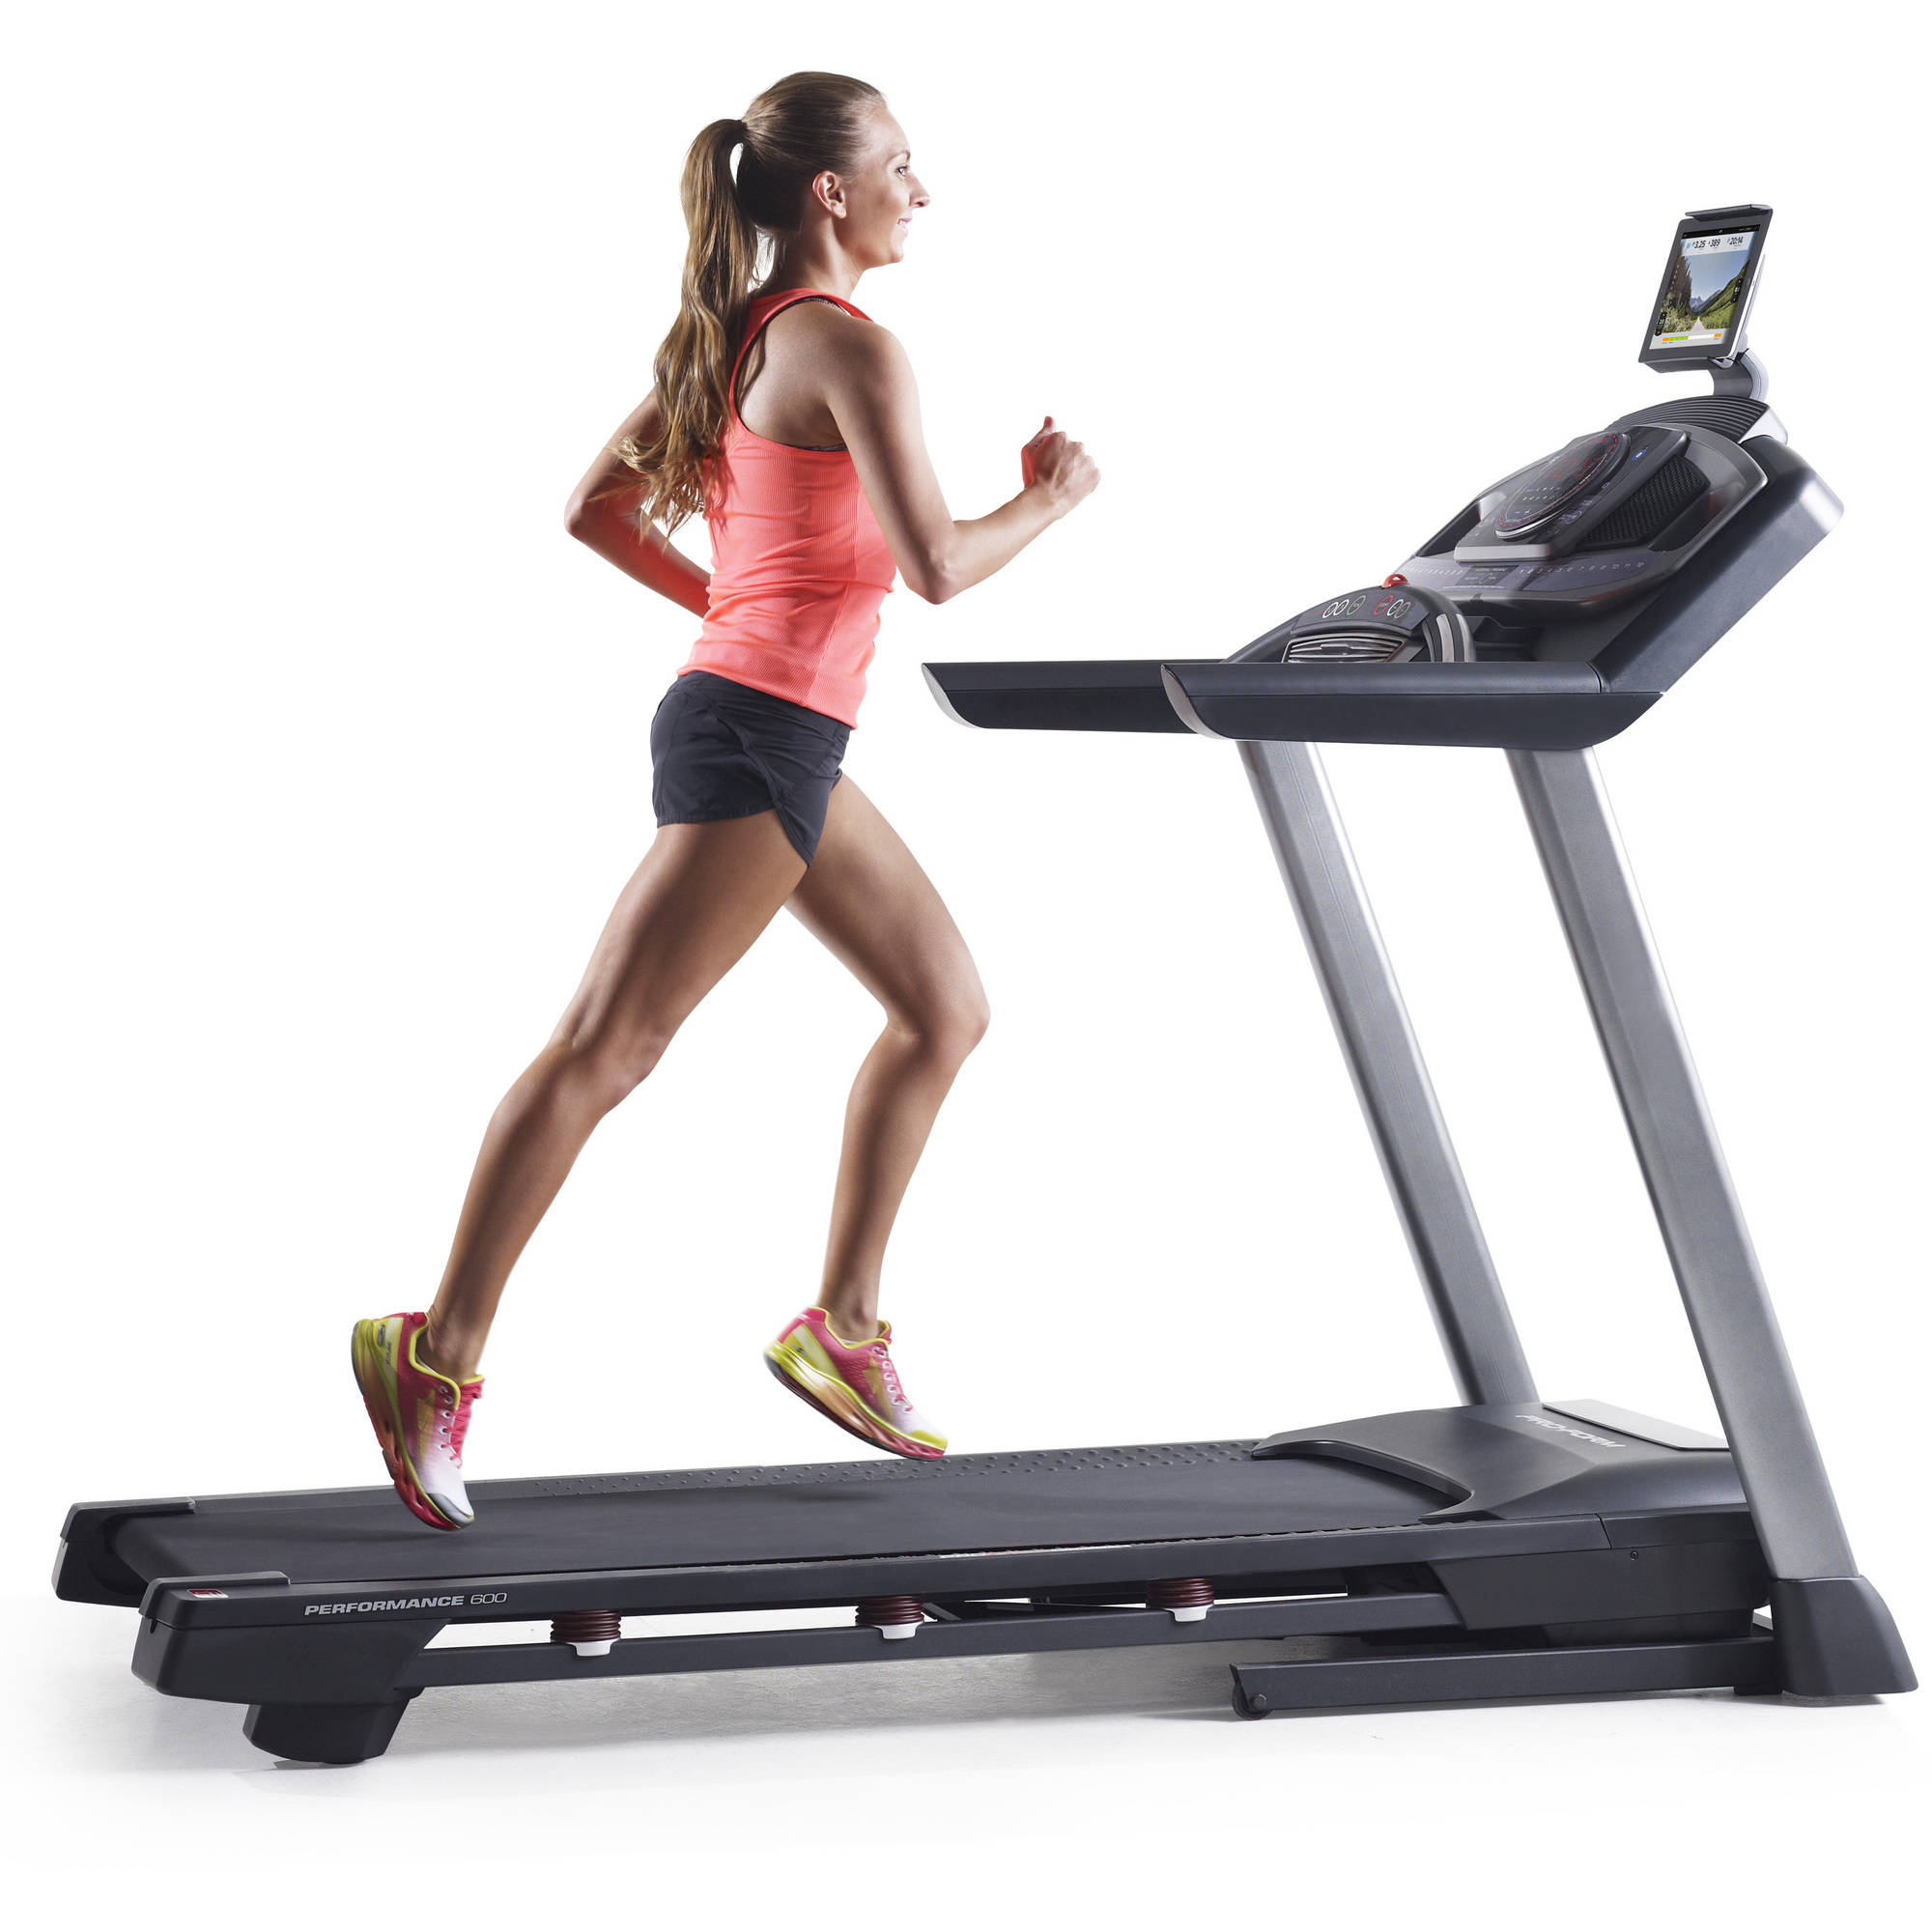 ProForm Performance 600i Treadmill with Running Deck and 12% Power Incline